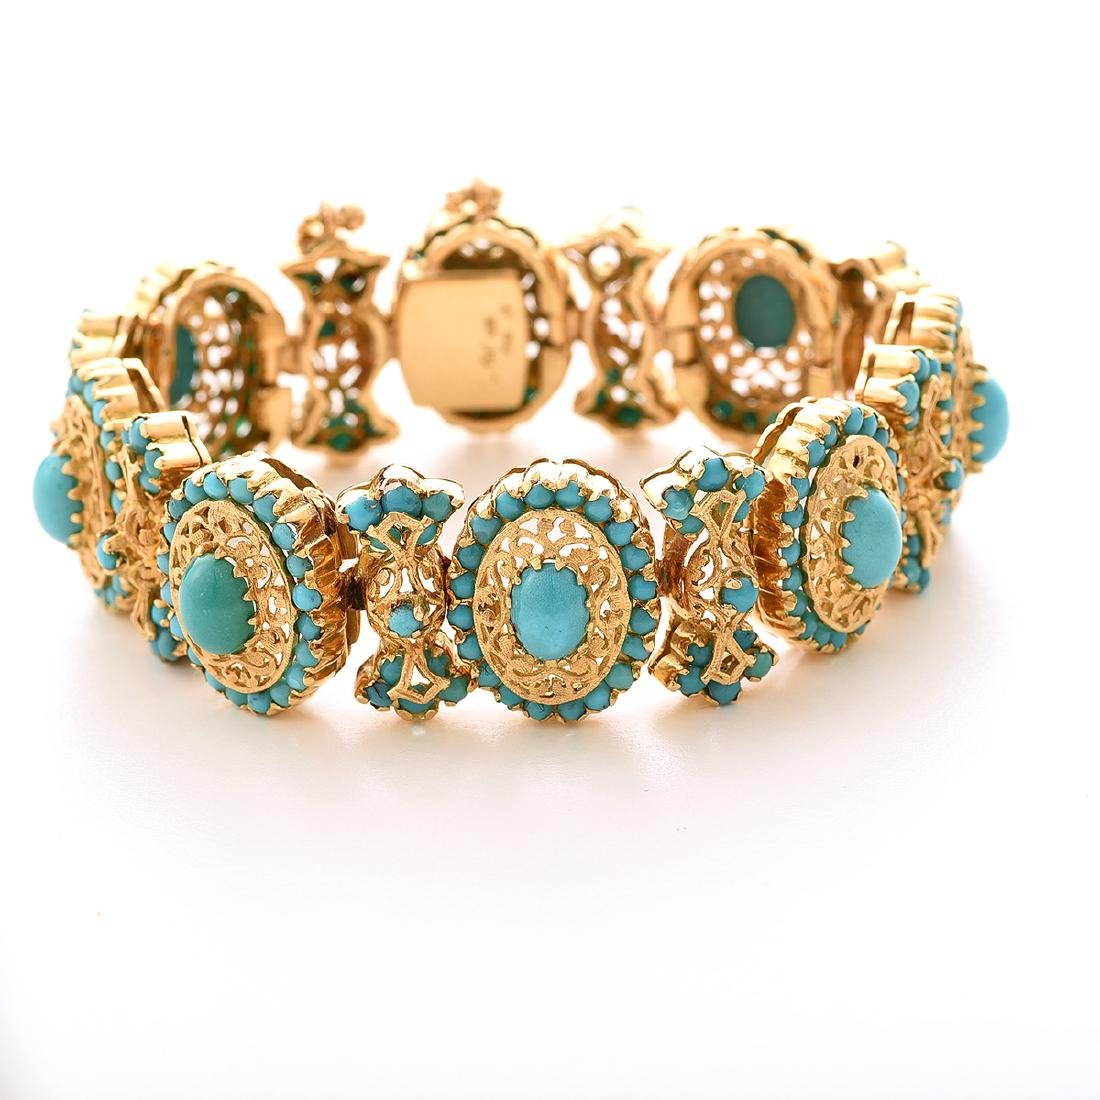 Reproduction Turquoise, Yellow Gold Jewelry Suite. - 3